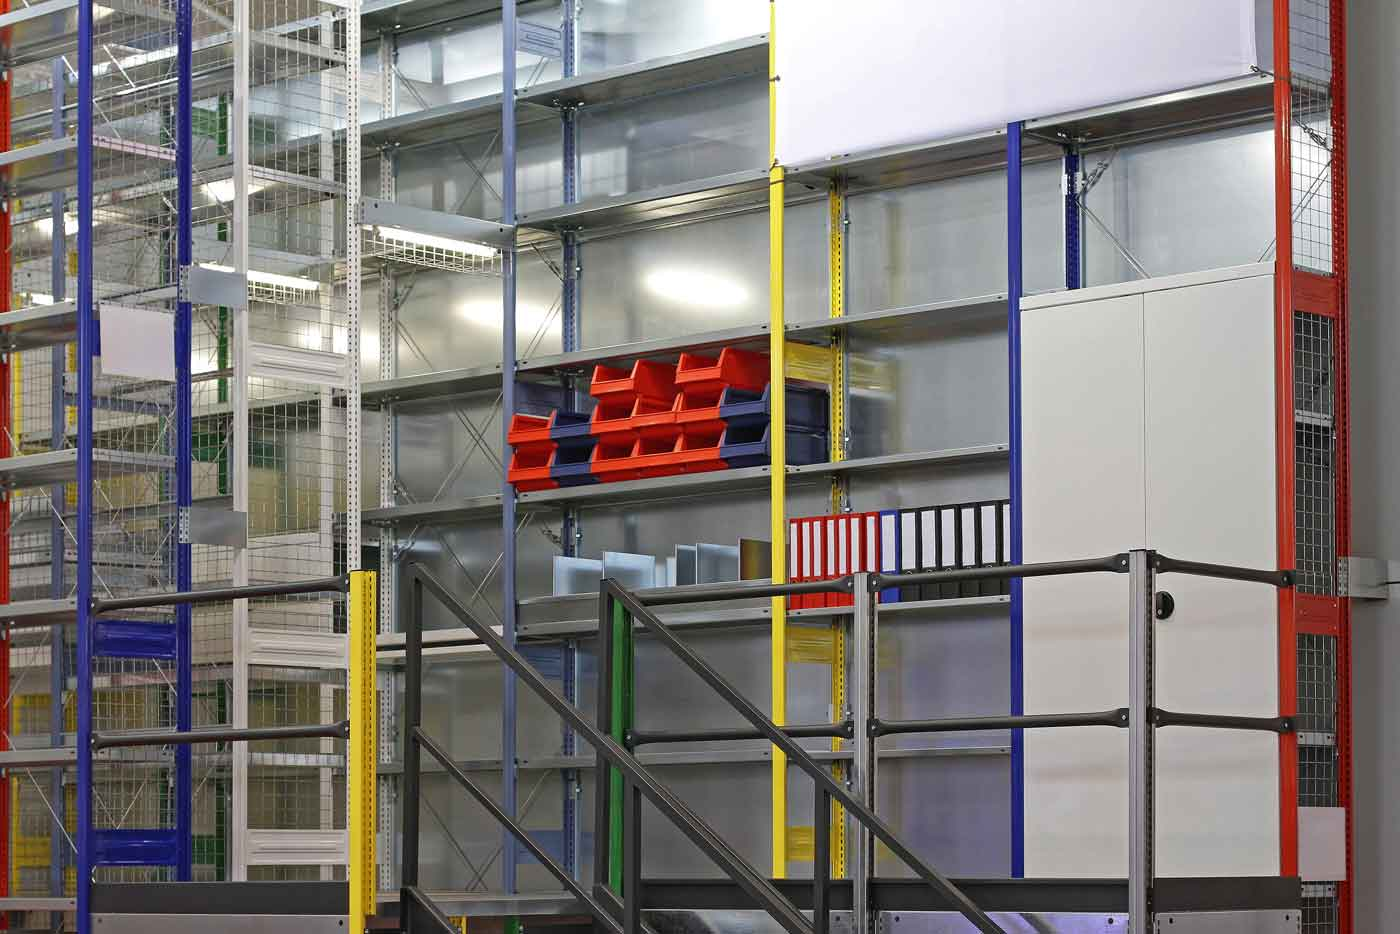 Mezzanine Flooring, Office Partitioning, Racking & Shelving